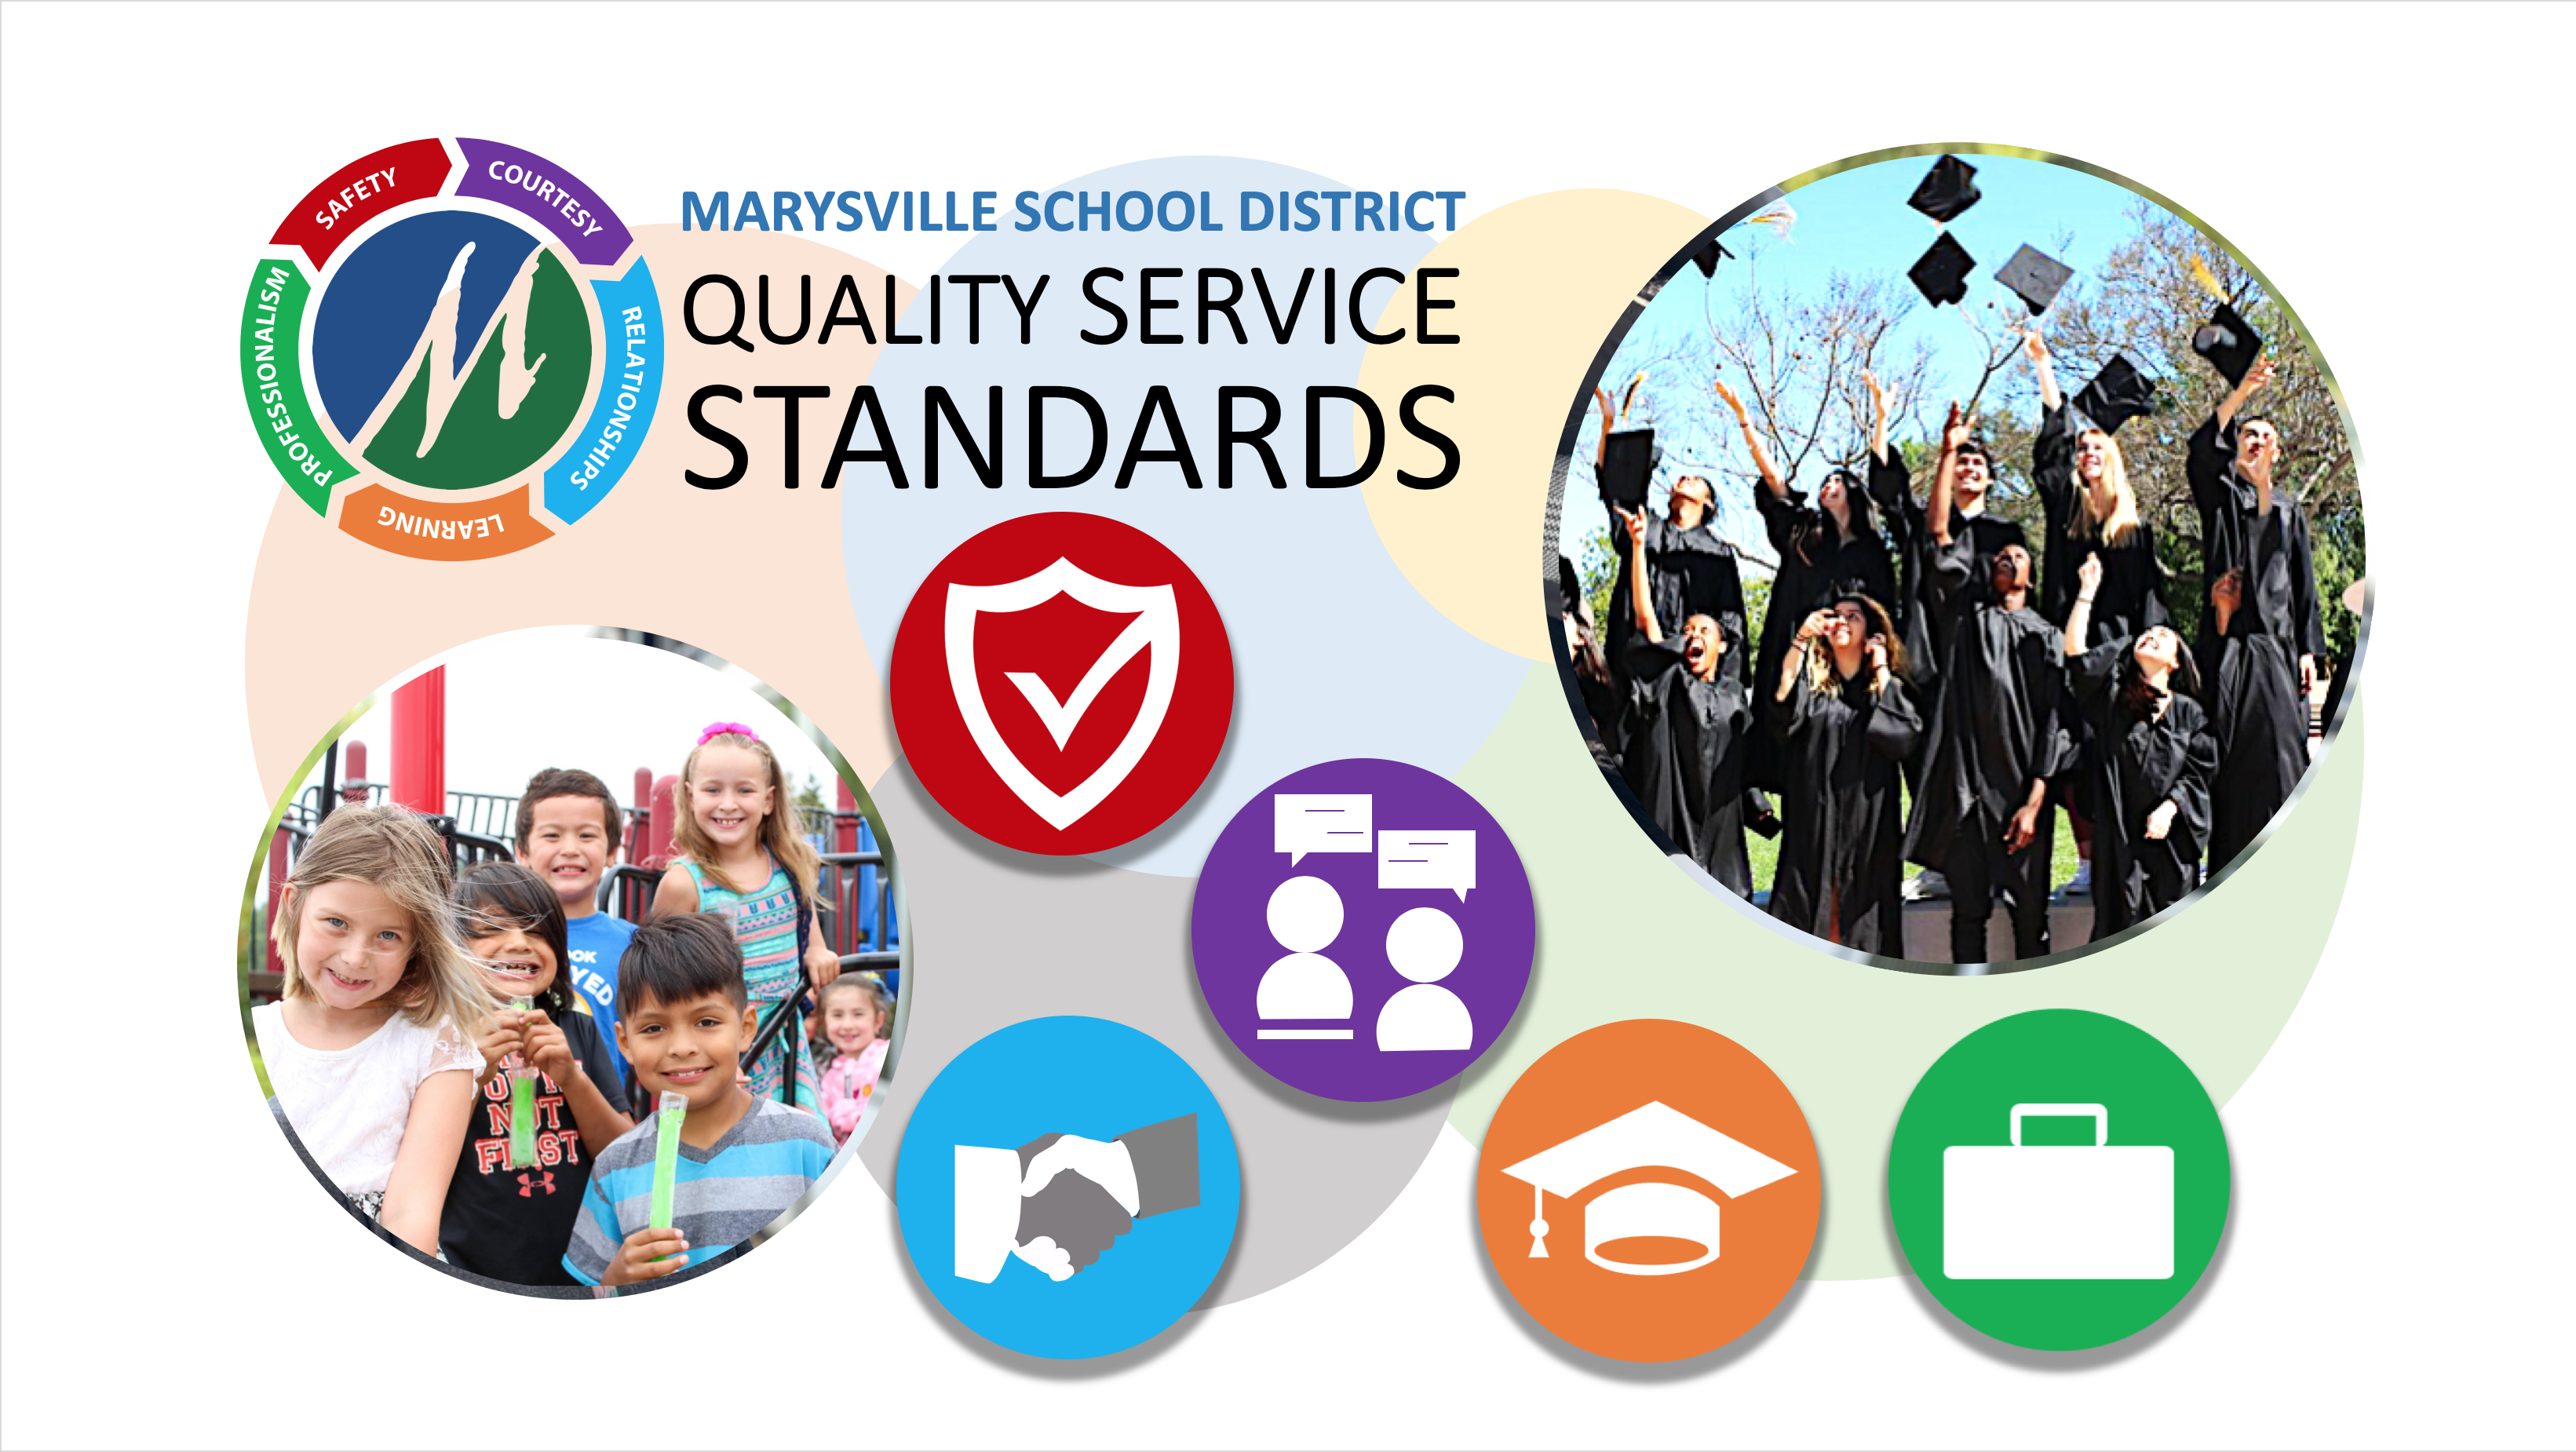 Learn more  about our QSS at msd25.org